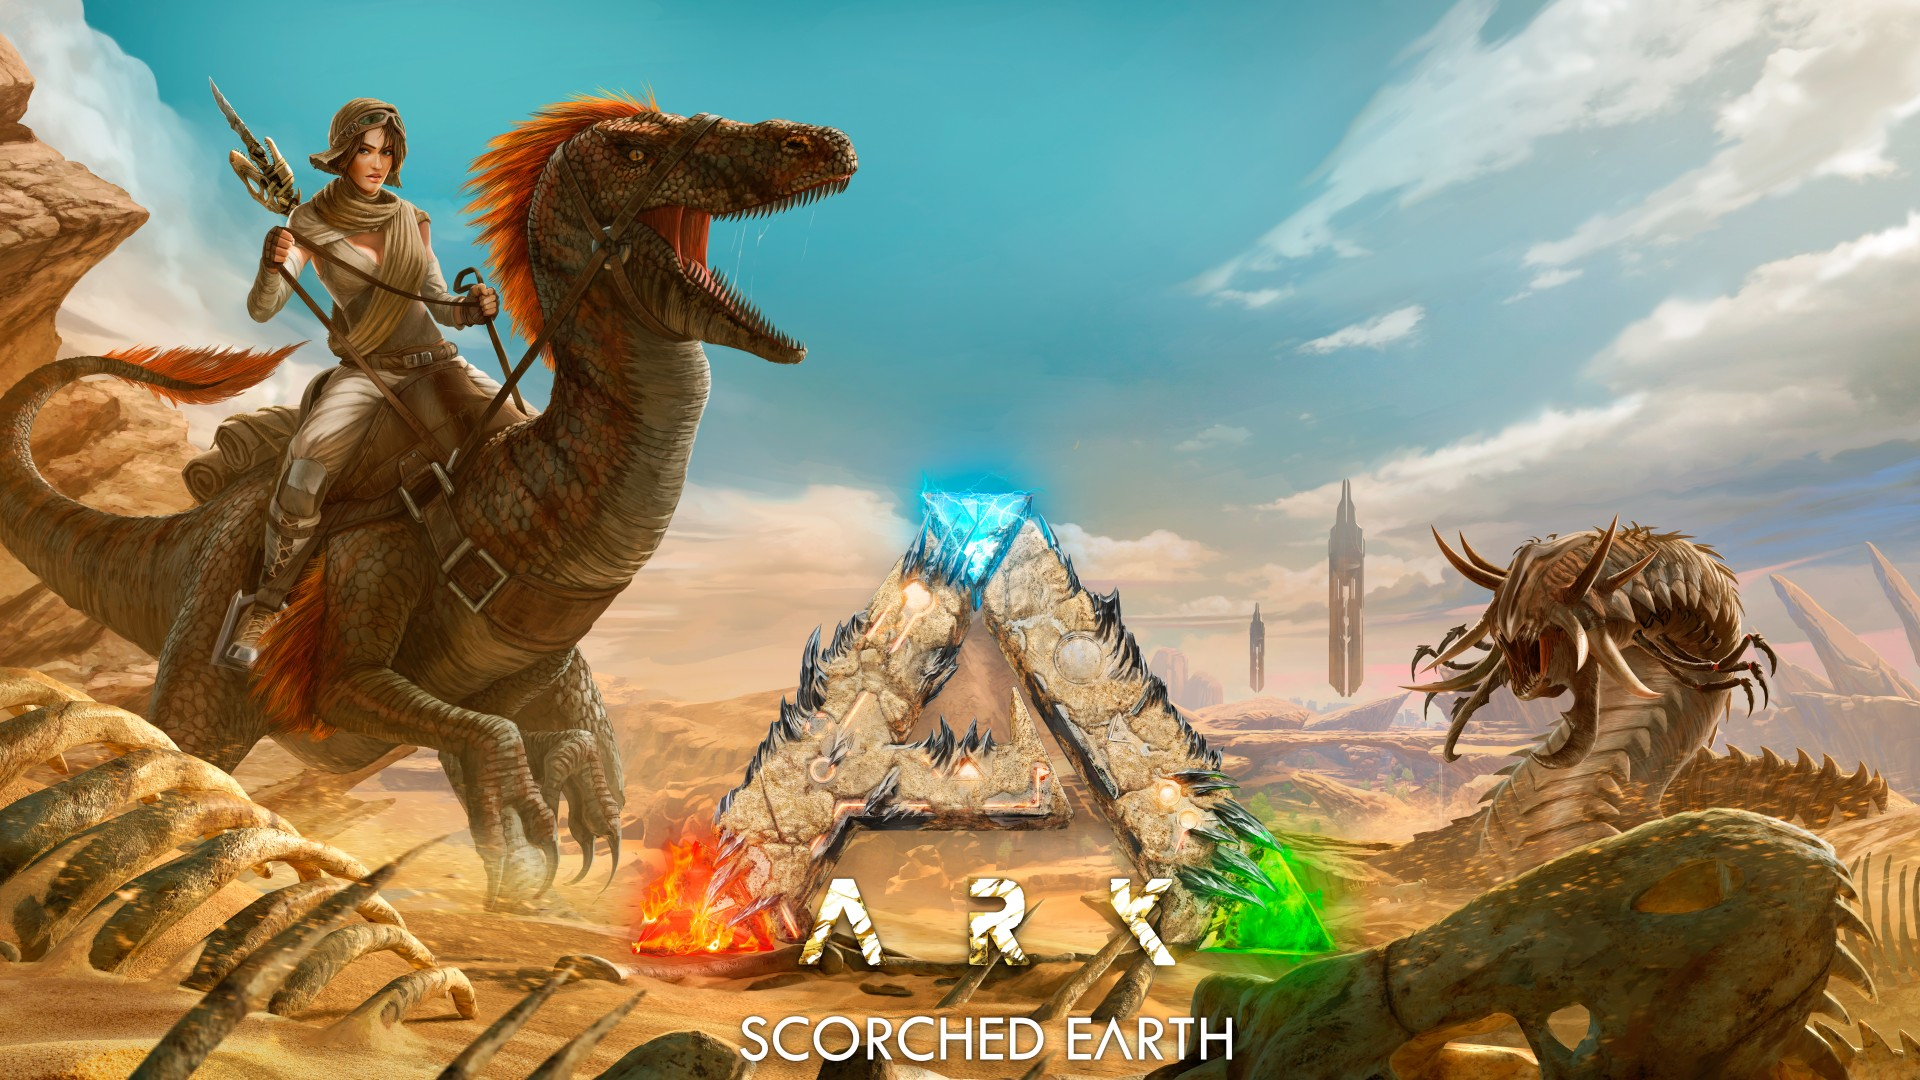 ARK Scorched Earth 4K 8K Wallpapers HD Wallpapers ID 19714